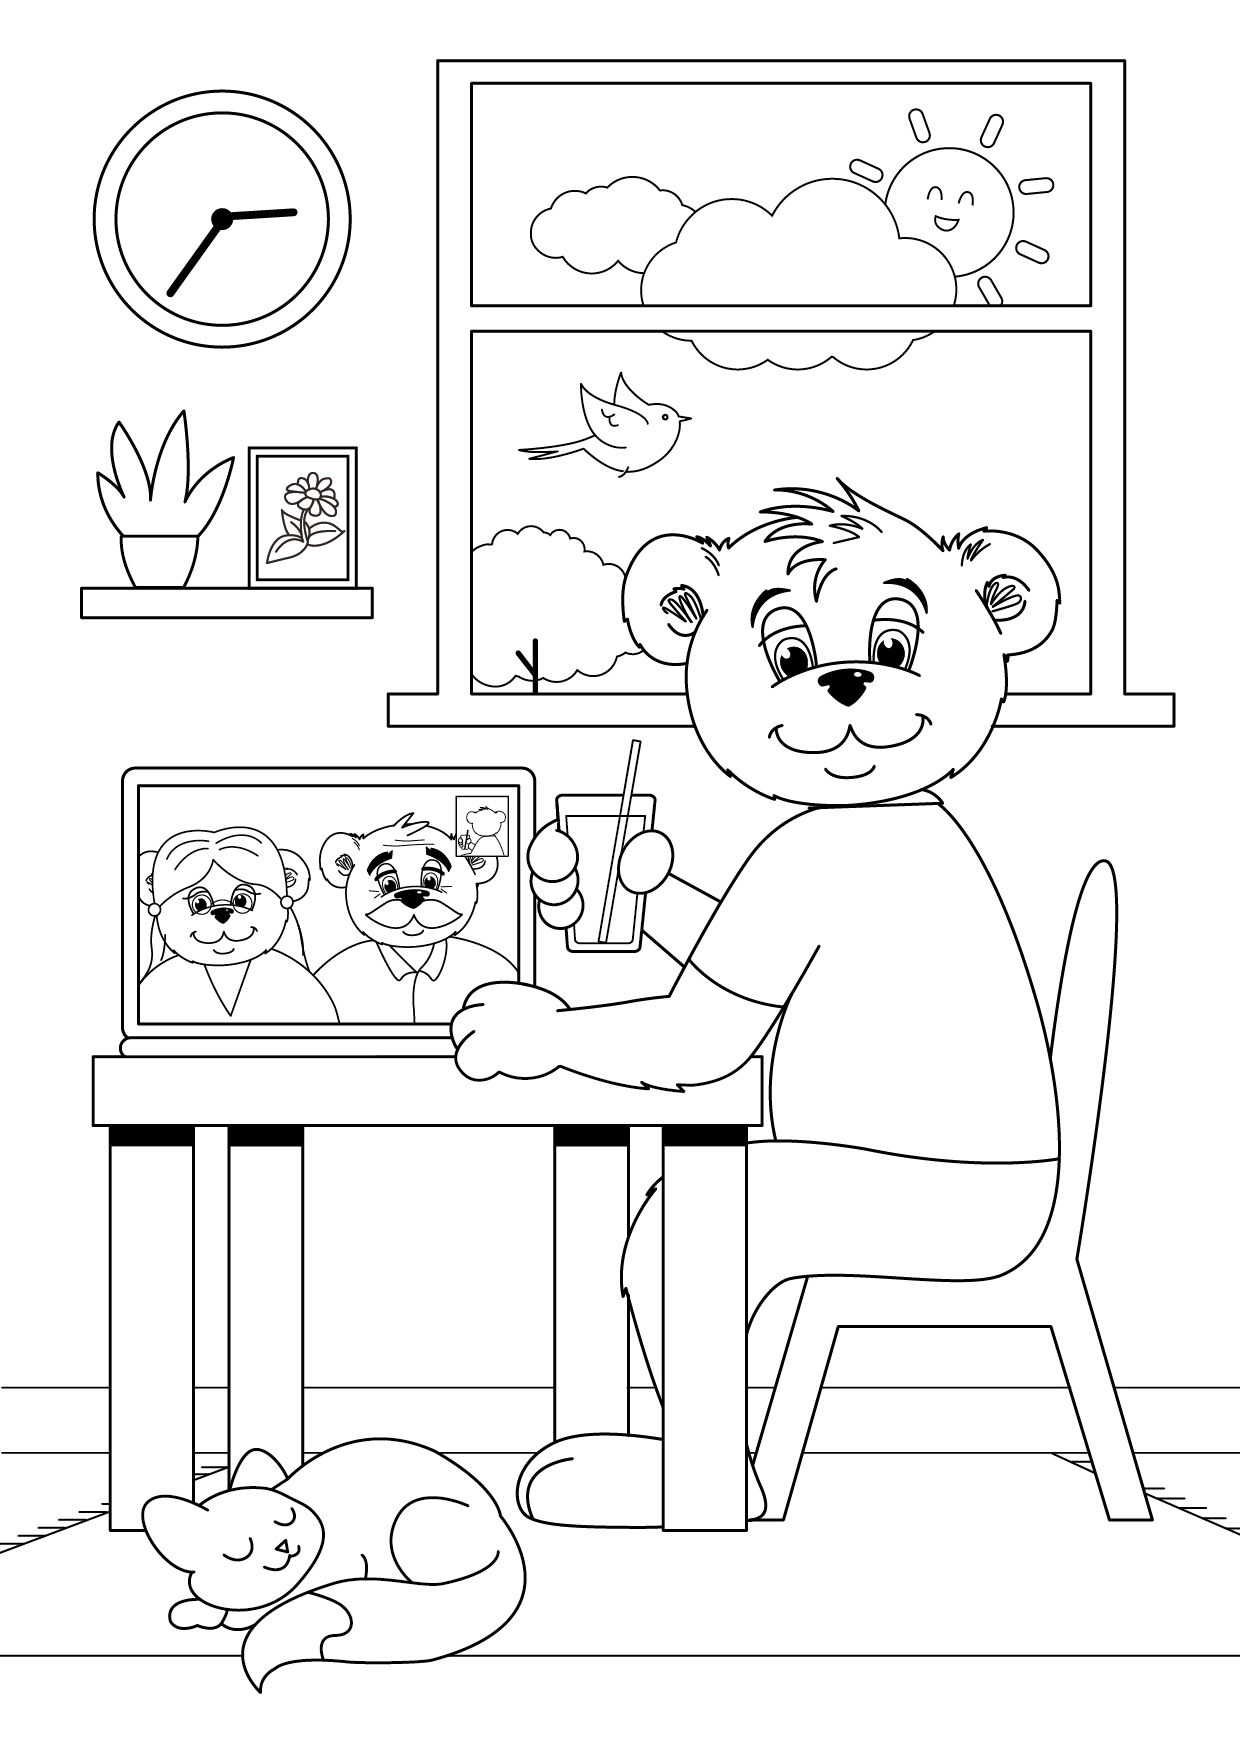 Billy the Bear_Facetime Colouring 150dpi.jpg